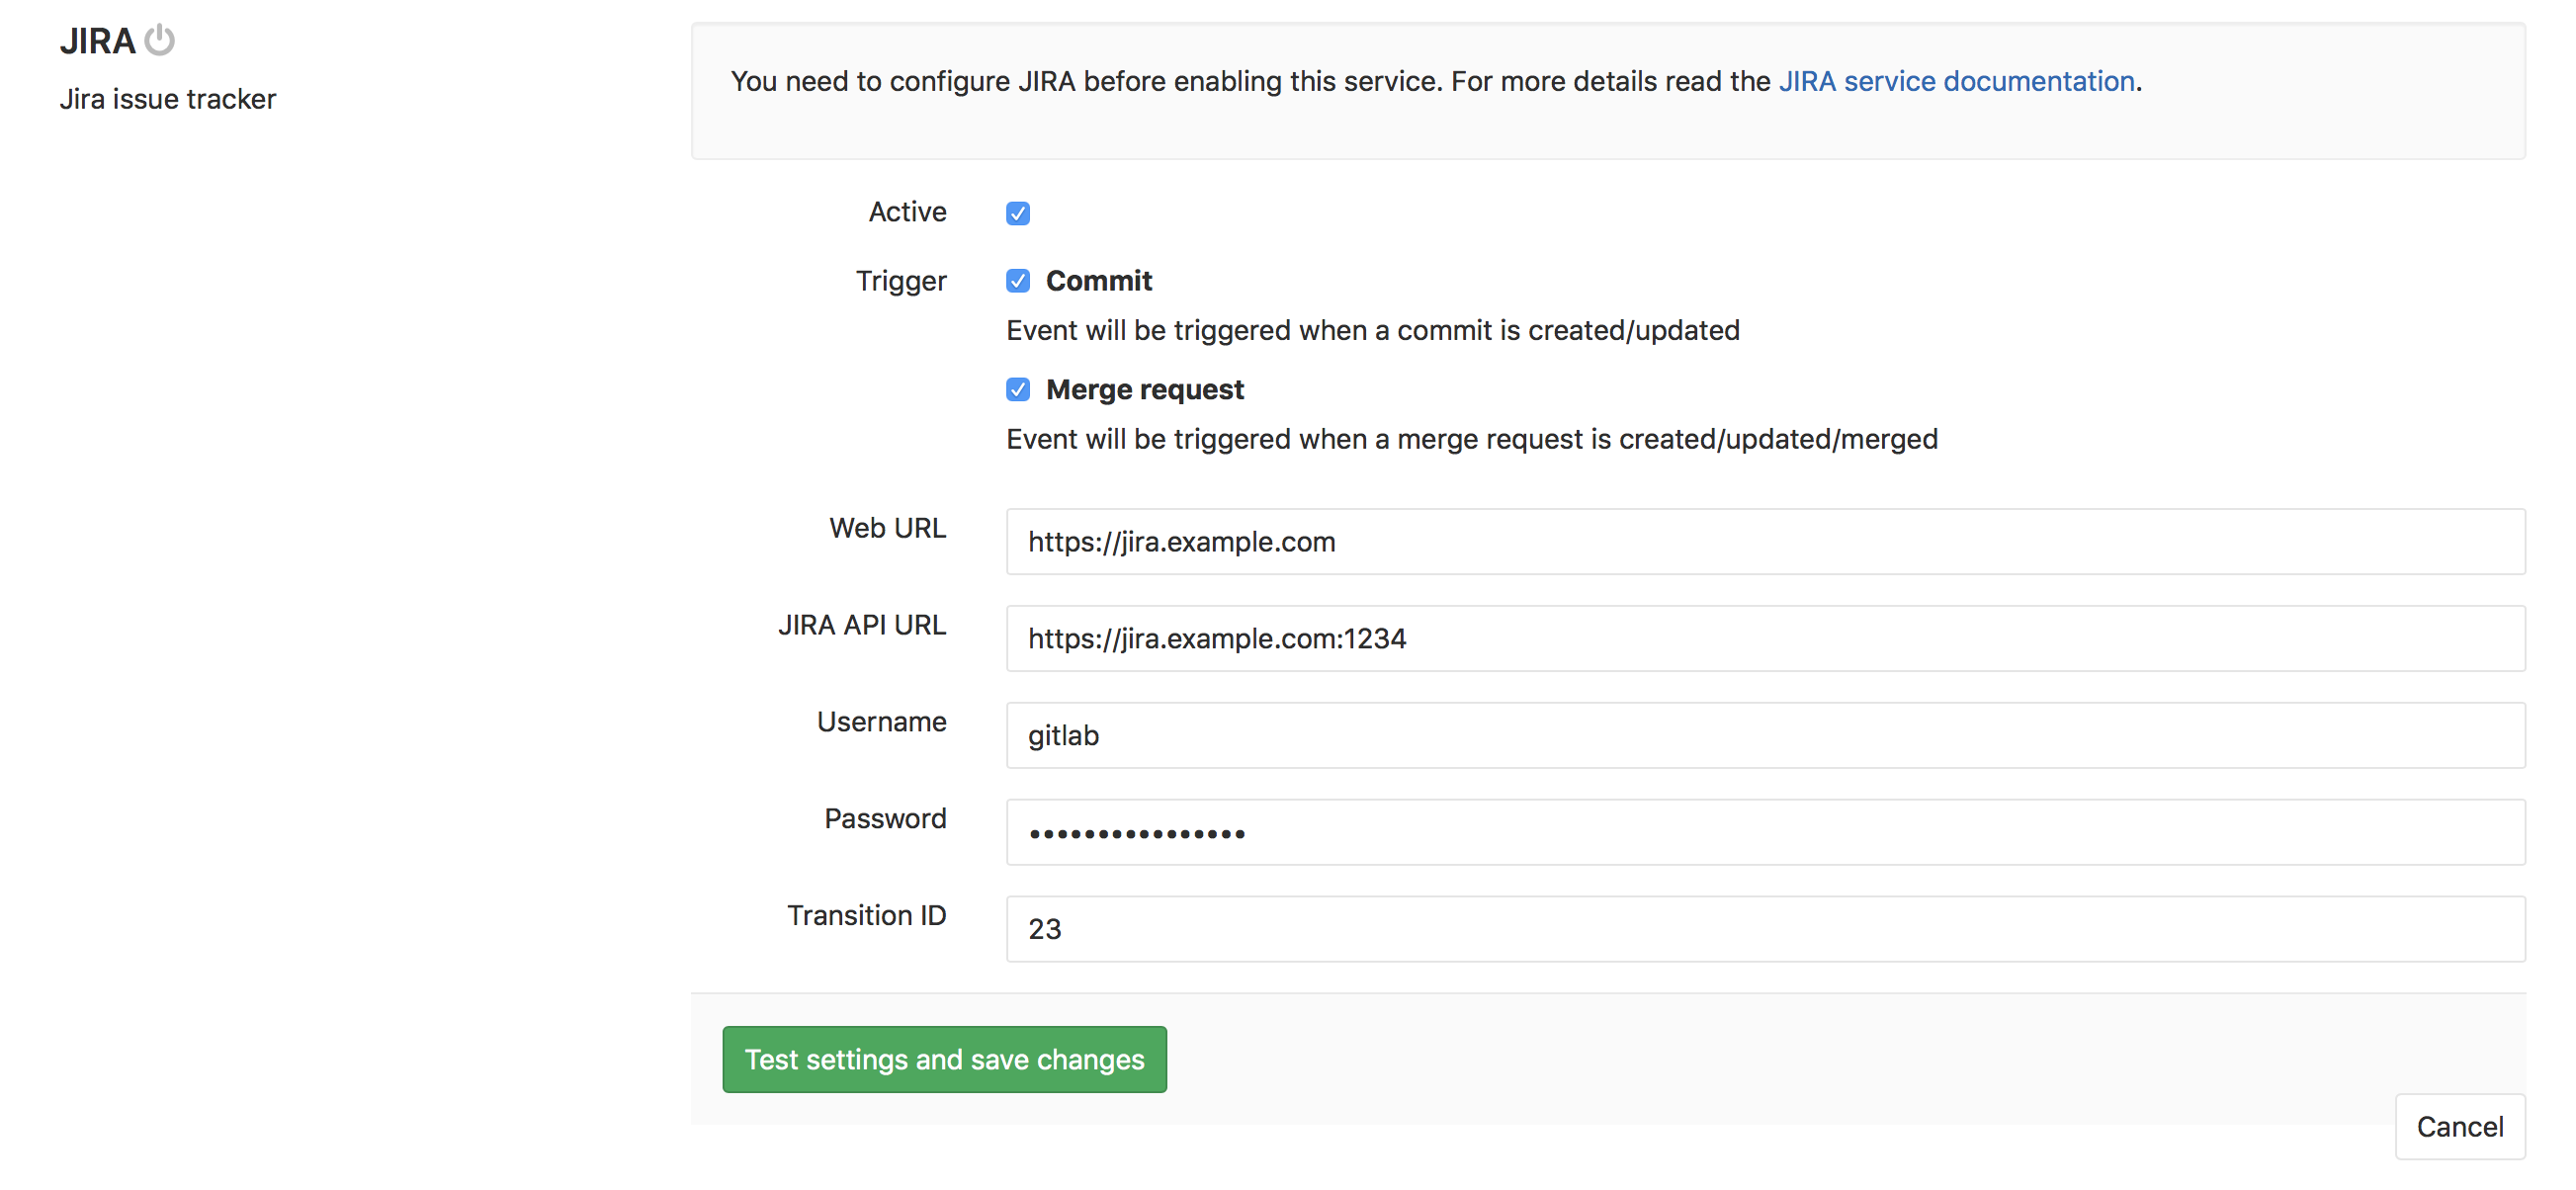 doc/user/project/integrations/img/jira_service_page.png